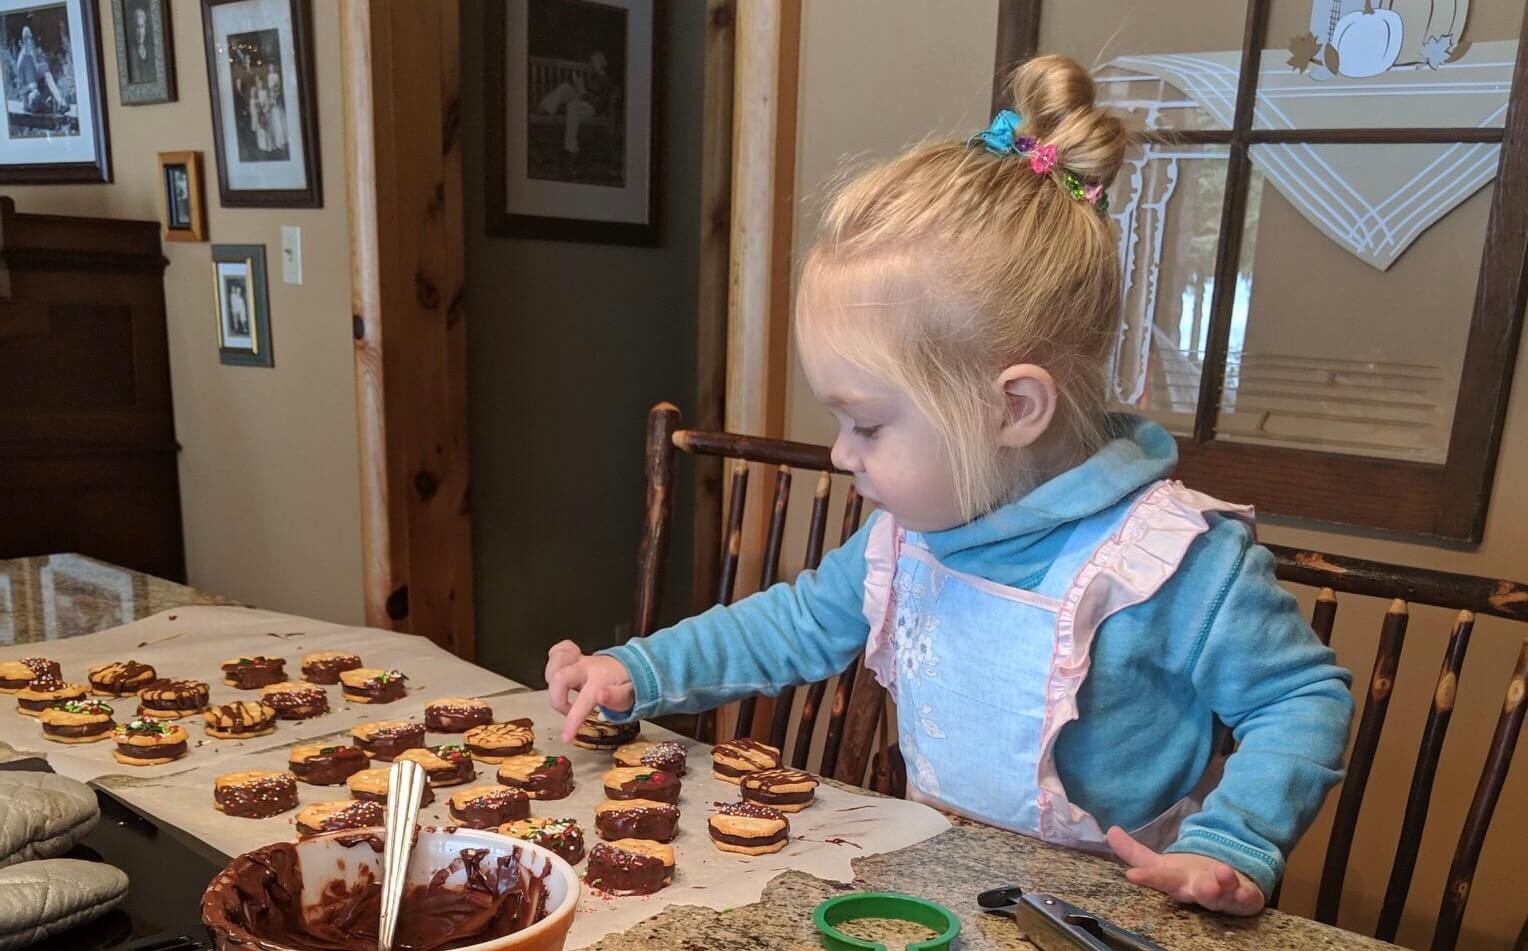 Toddler making chocolate covered ritz crackers with York patties, Christmas cookie family traditions